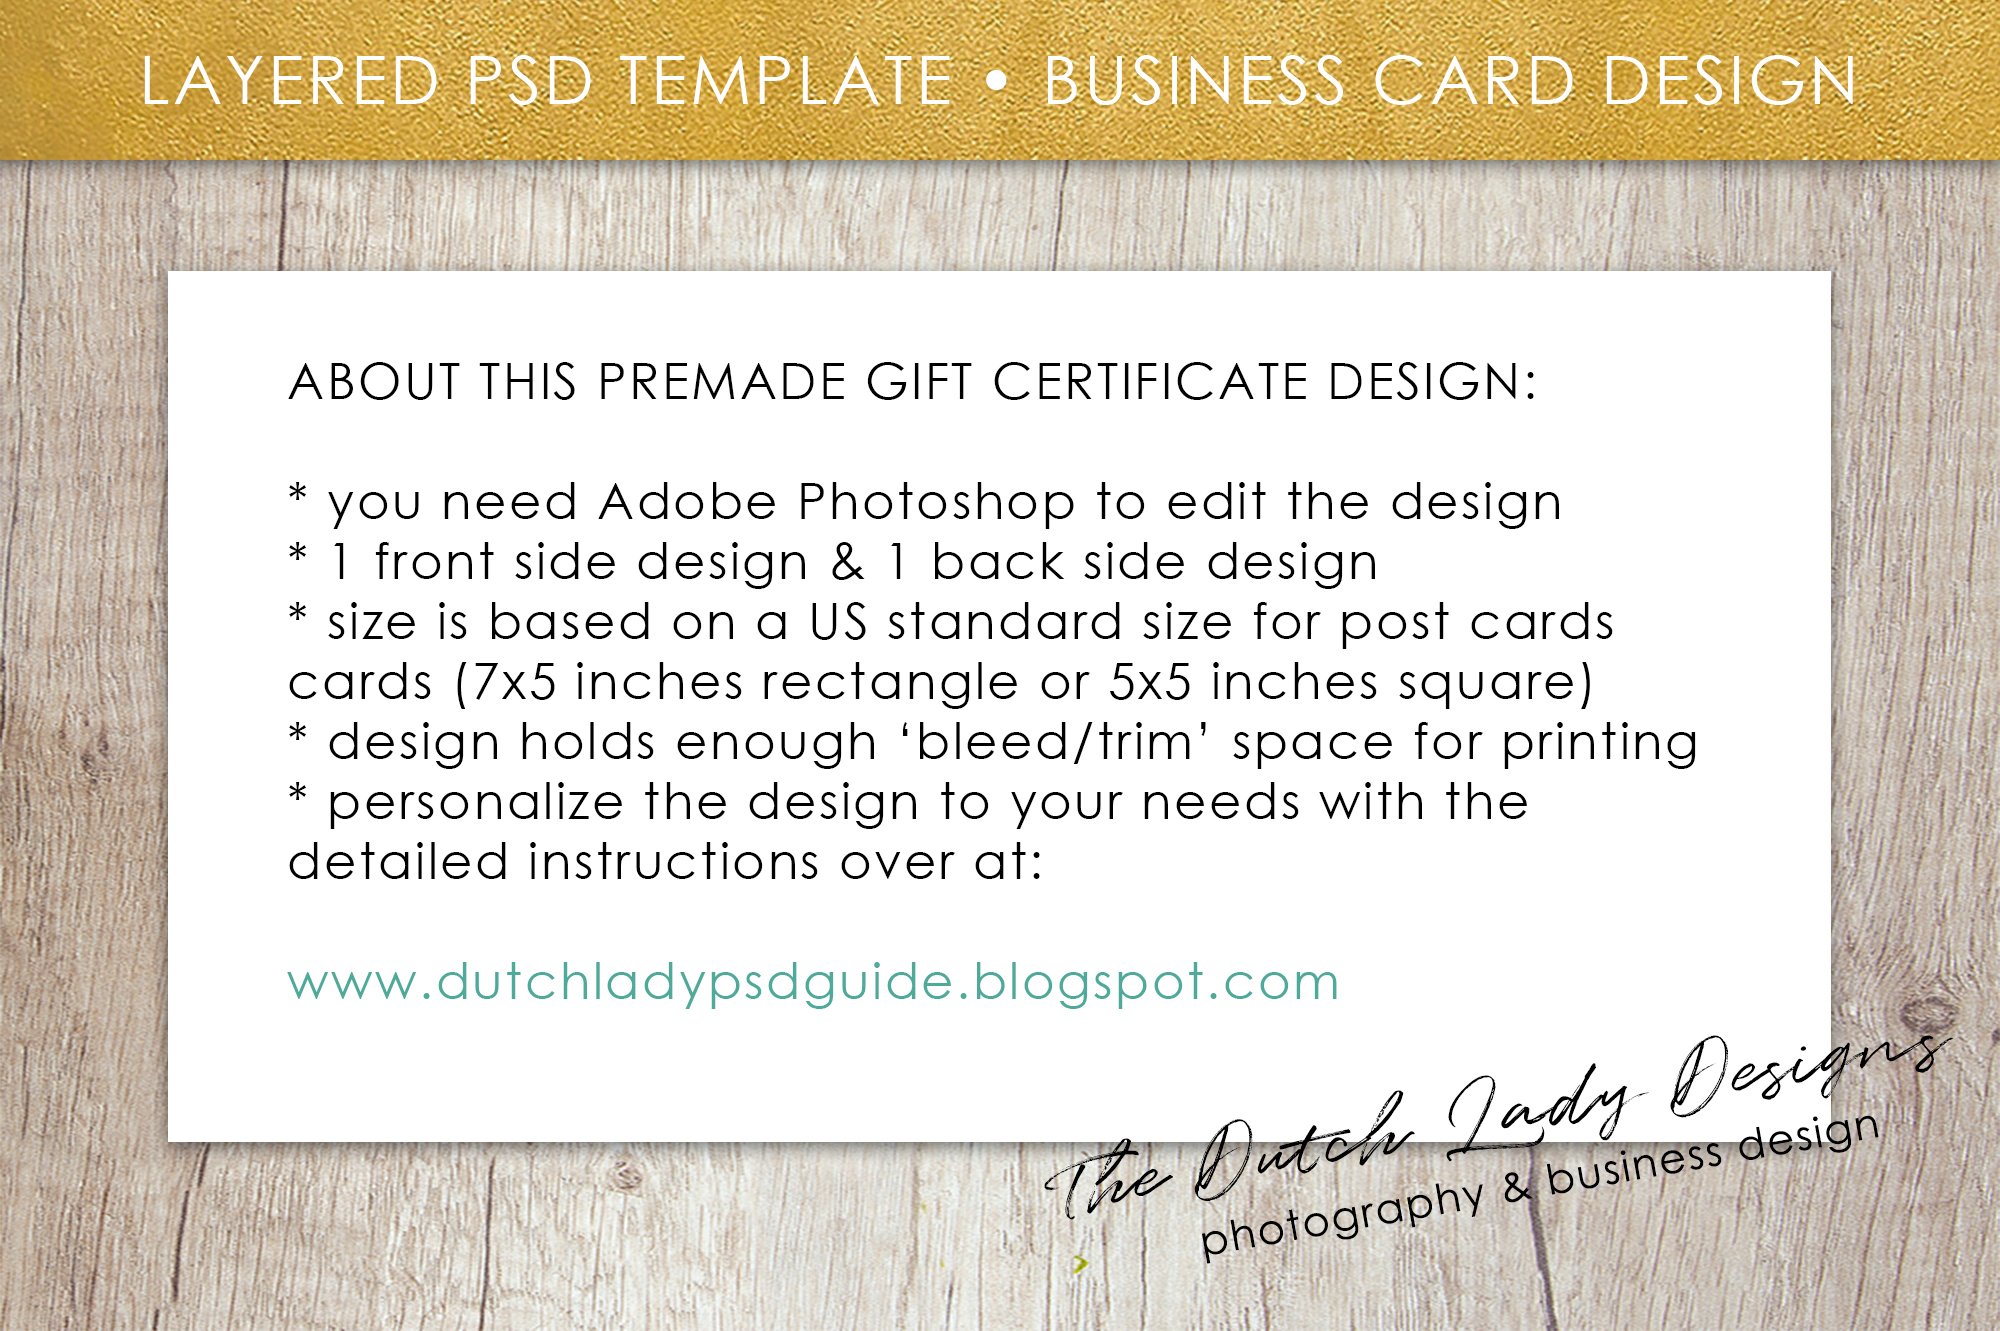 Photo Gift Card Template For Adobe Photoshop   Layered PSD Template    Design #33 Example